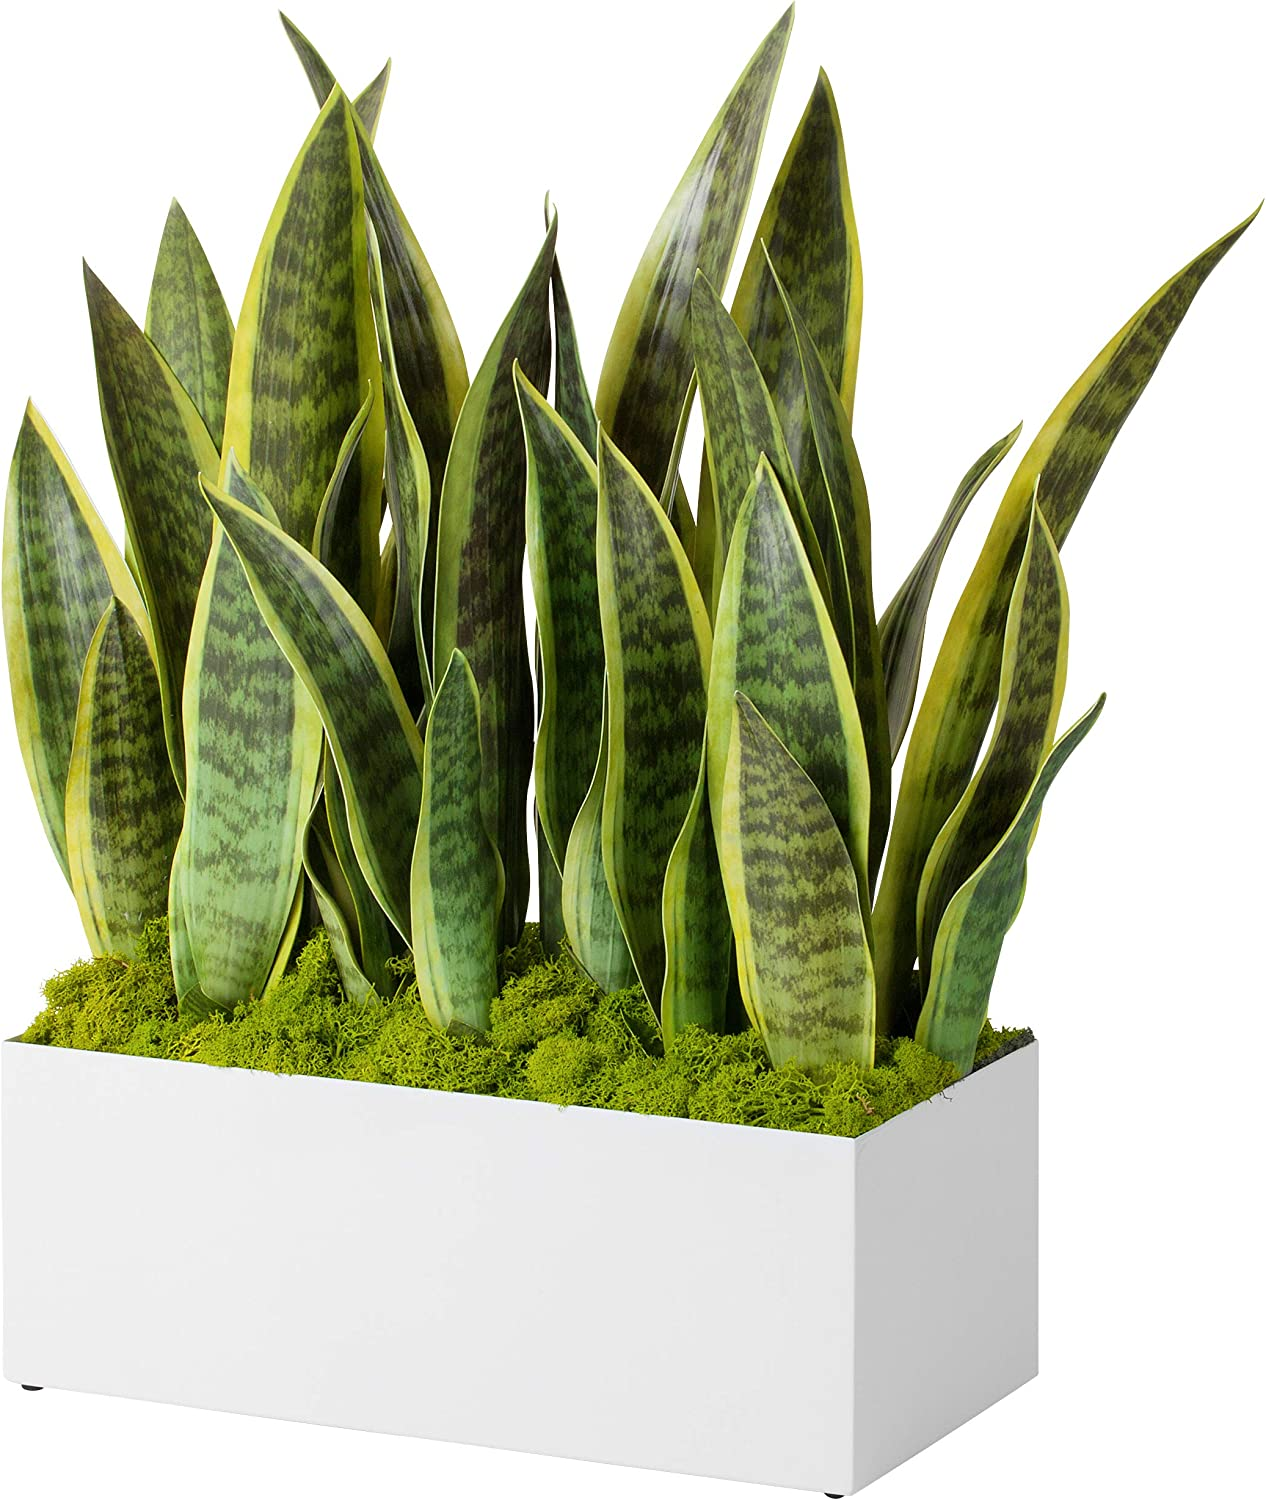 "Modern Rectangle Planter Box - 16"" Metal Trough Planter Ideal as a Herb Planter 